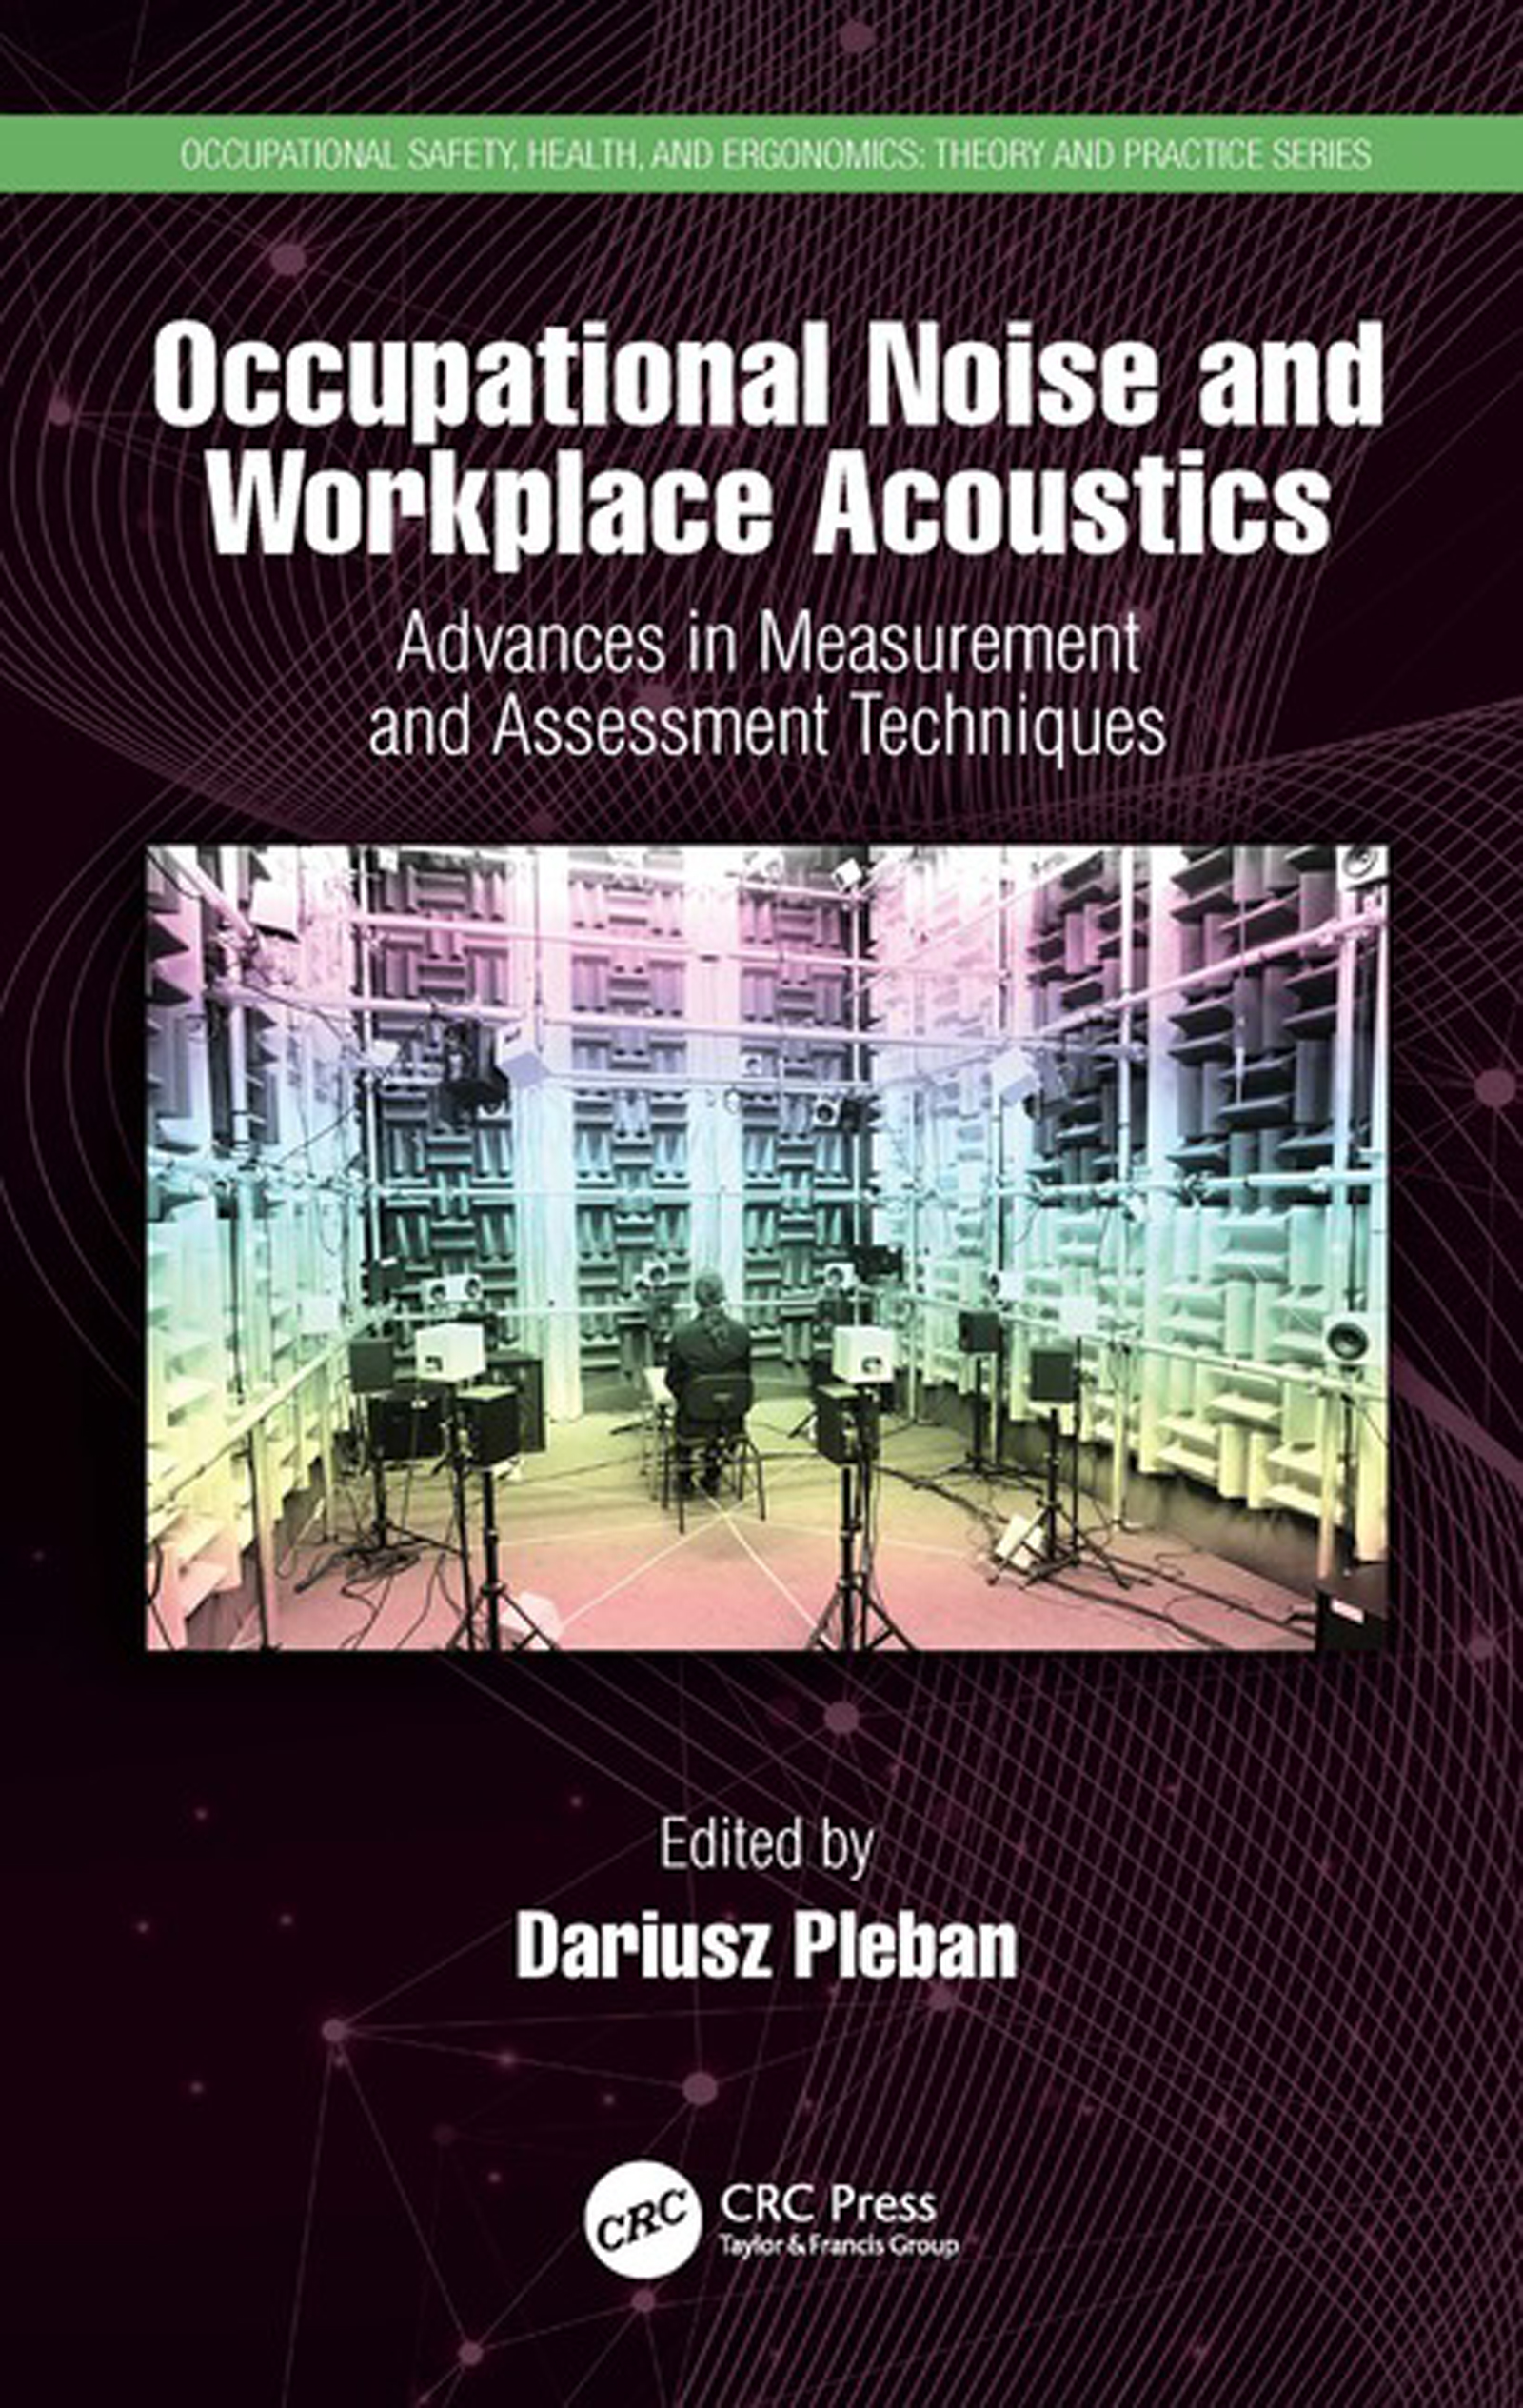 Occupational Noise and Workplace Acoustics